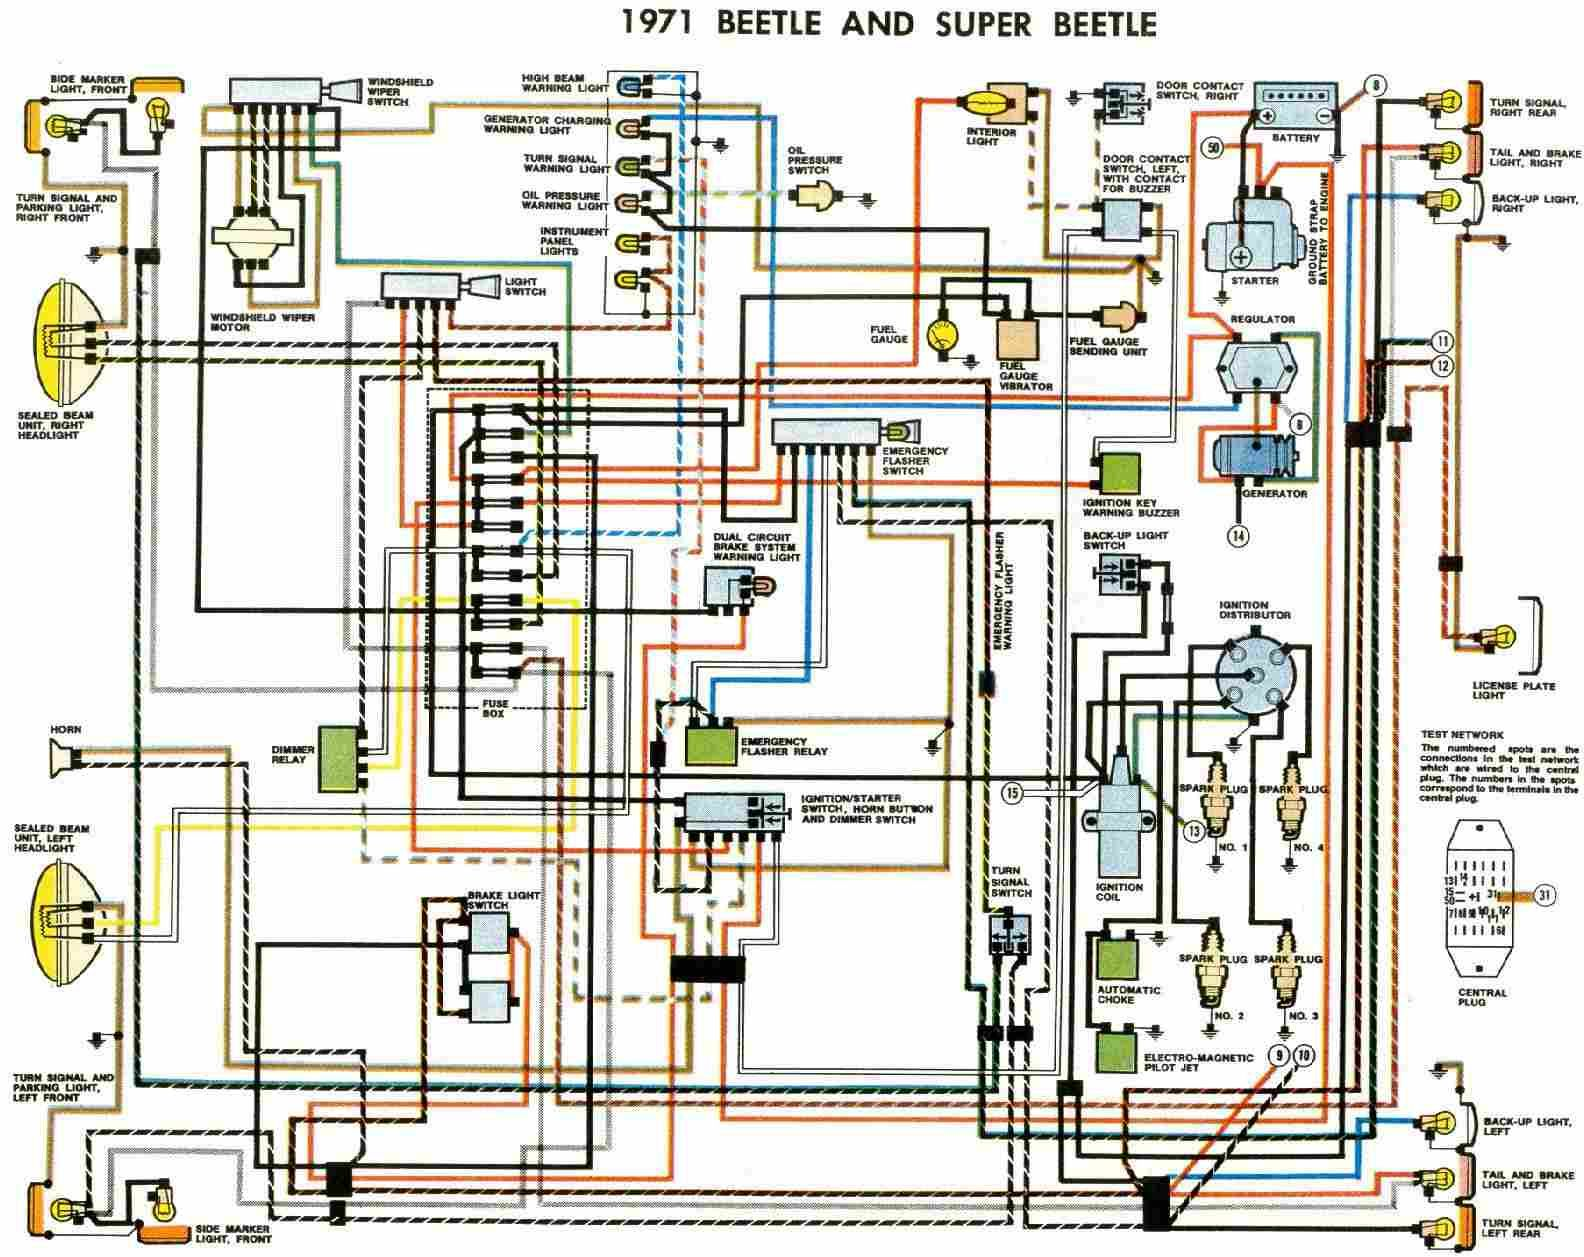 6379f2a777a0eb1b27fdba46670ceb6a free auto wiring diagram 1971 vw beetle and super beetle byocar 1971 vw bus wiring diagram at bakdesigns.co